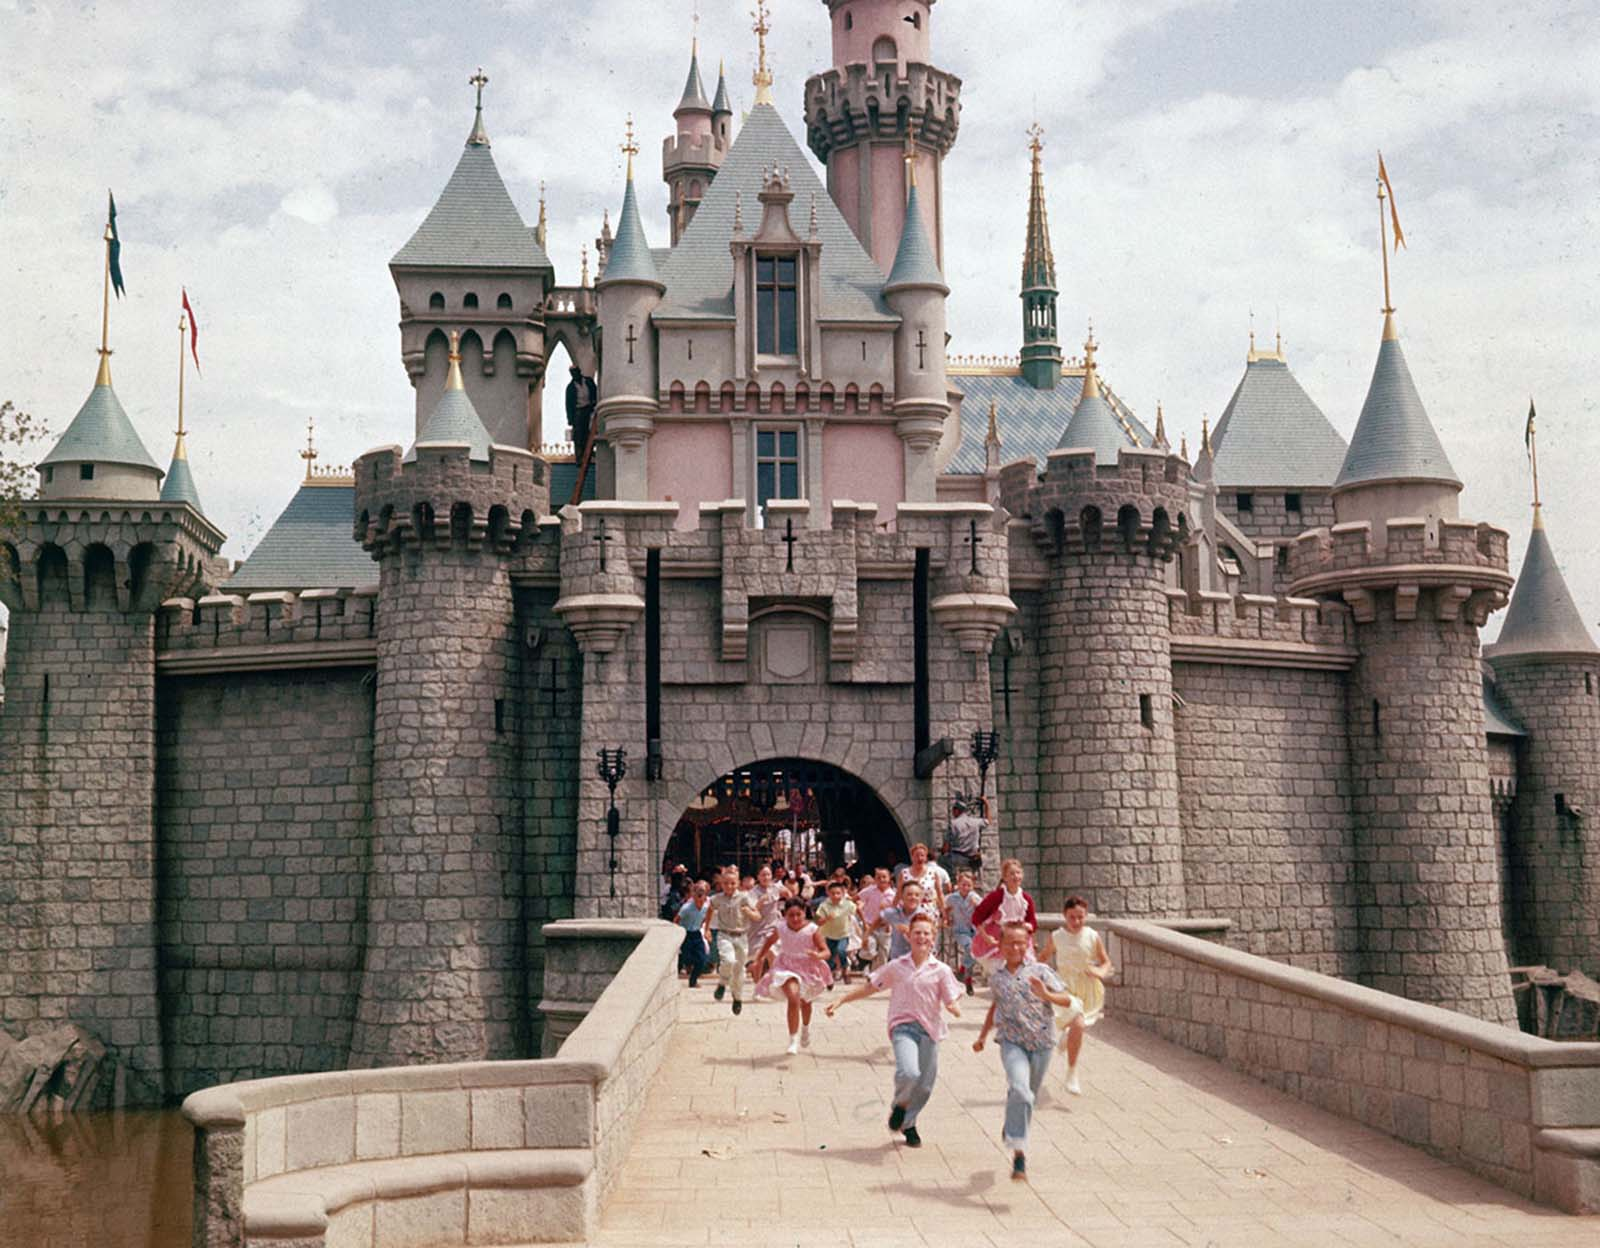 Children run through the gate of Sleeping Beauty's Castle at Disneyland, Walt Disney's theme park, in July 1955. The park opened to the public the week of July 17, 1955.